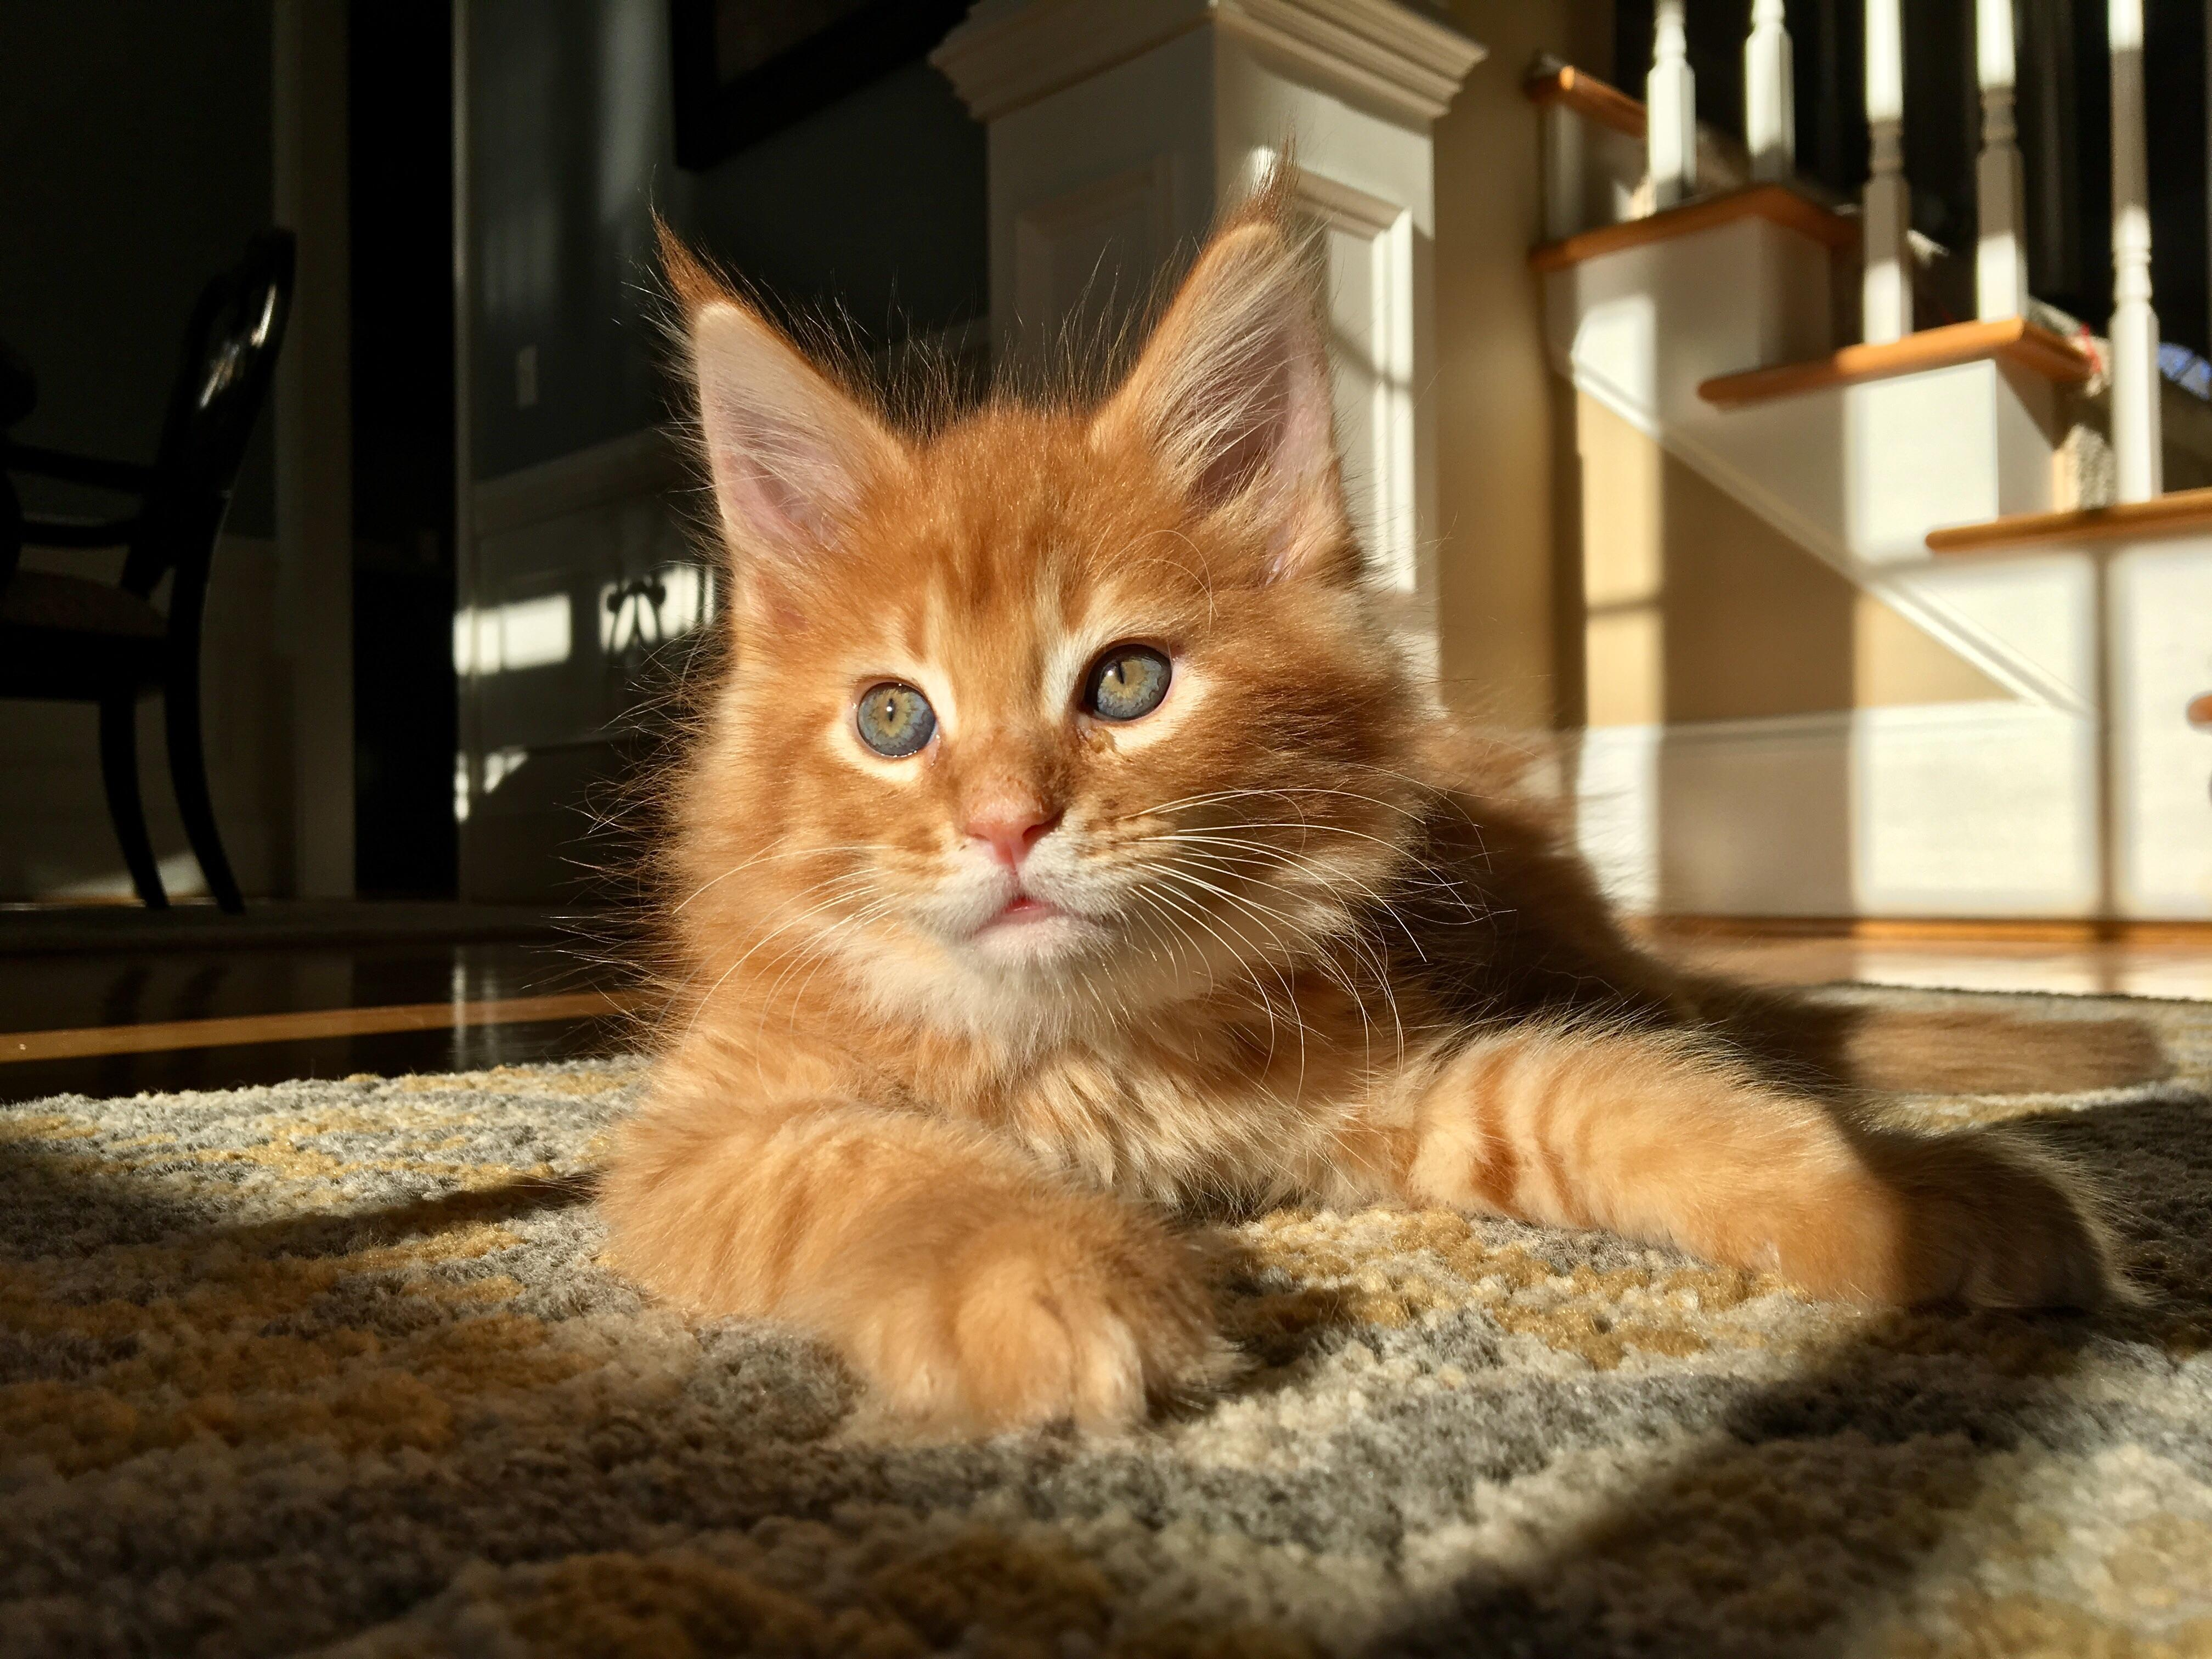 Reddit - meet Emmett, our new baby Maine Coon! : mainecoons